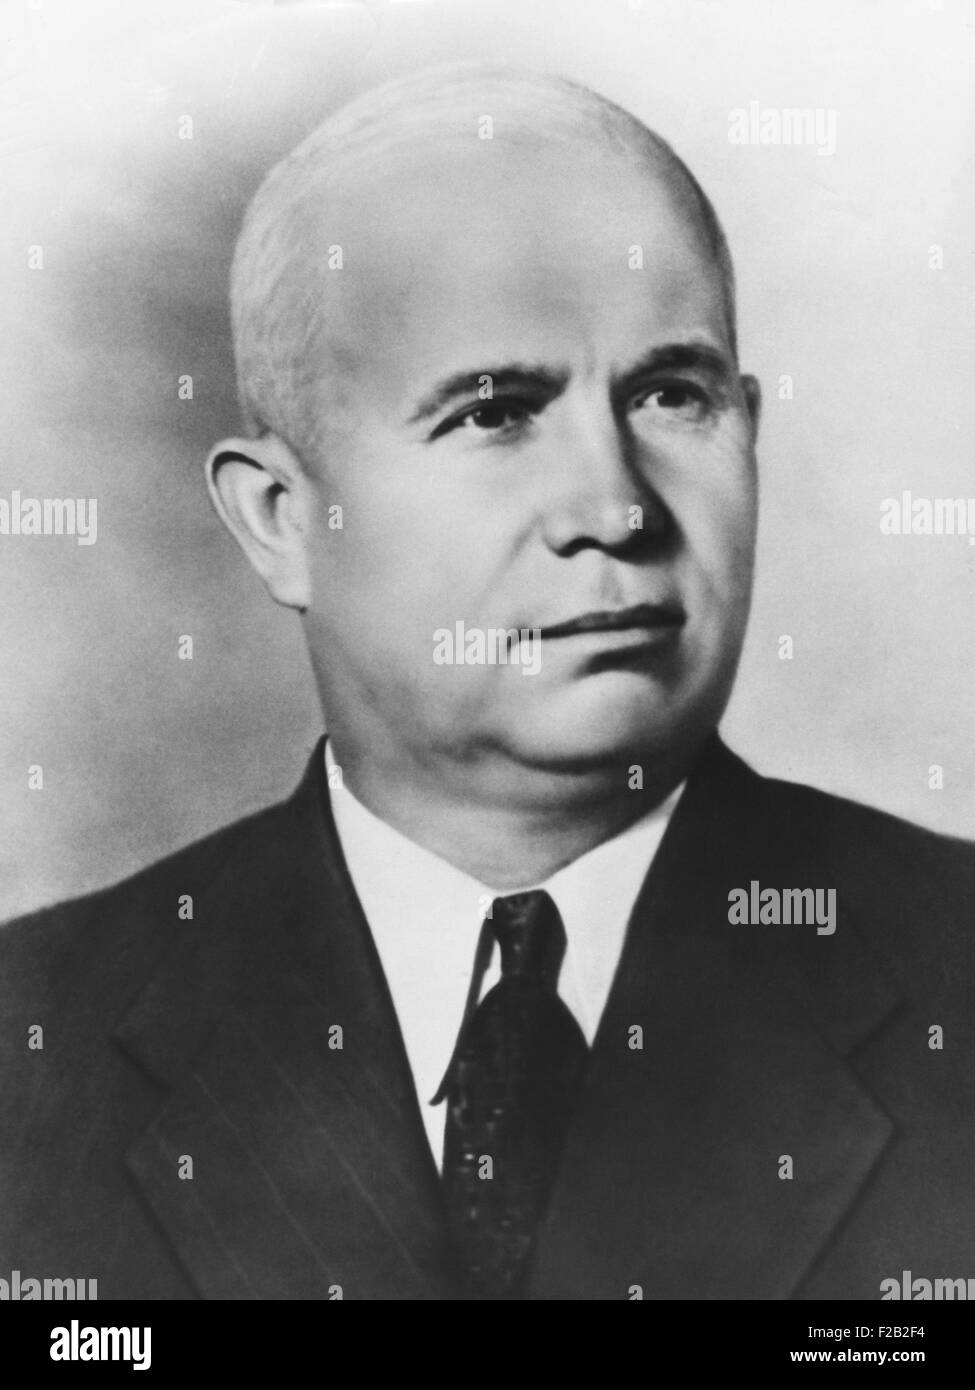 Nikita Khrushchev, as First Secretary of the Central Committee of the Communist Party, Soviet Union. Ca. 1953. (CSU - Stock Image